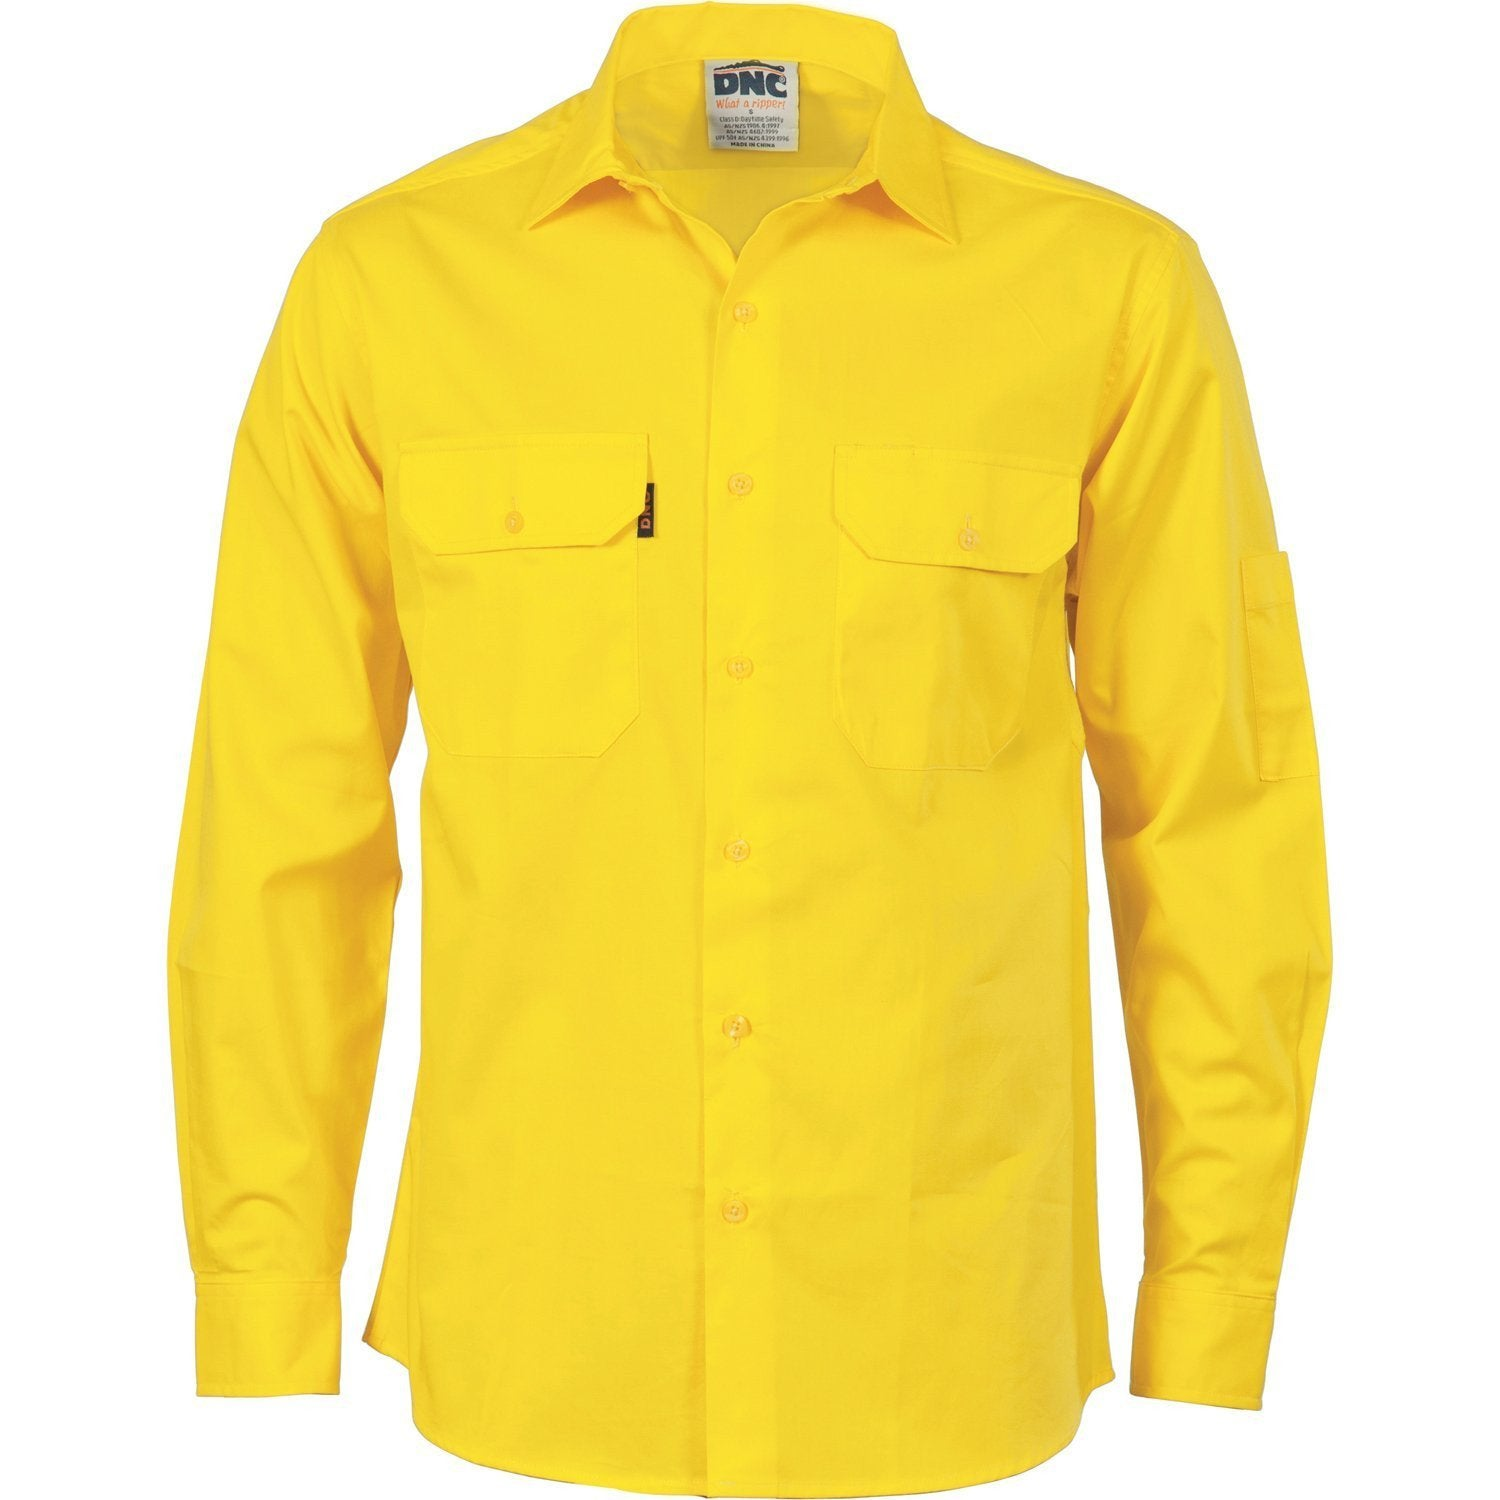 Cool-Breeze Long Sleeve Work Shirt